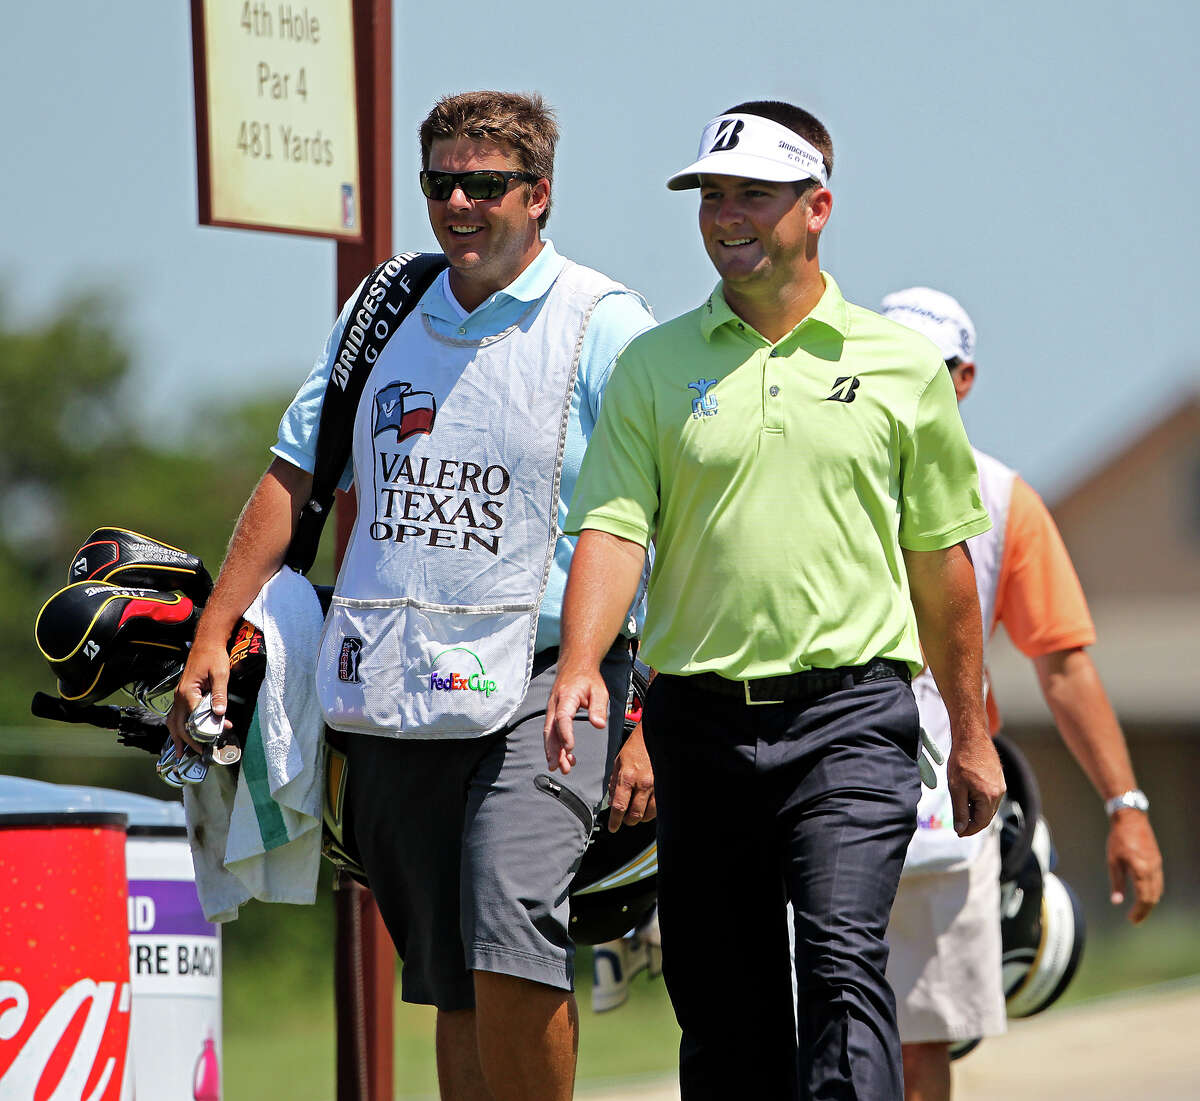 Matt Every (right) is all smiles making his way to the No. 4 tee box during Thursday's first round.